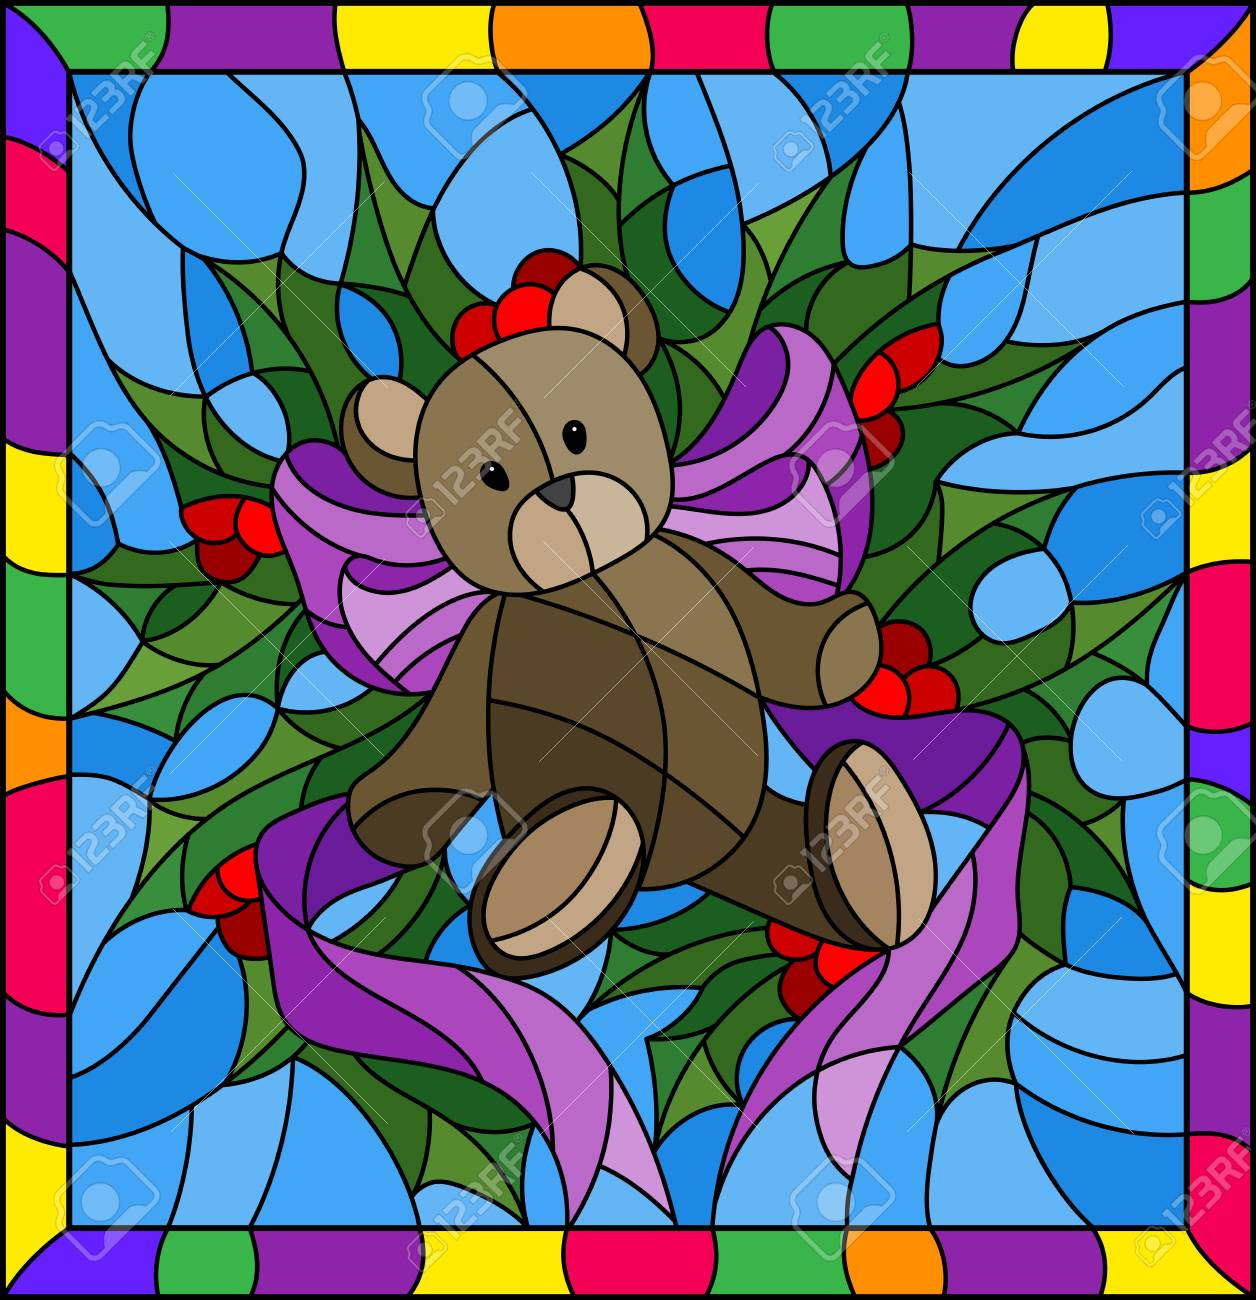 Illustration In Stained Glass Style For New Year And Christmas,Teddy ...